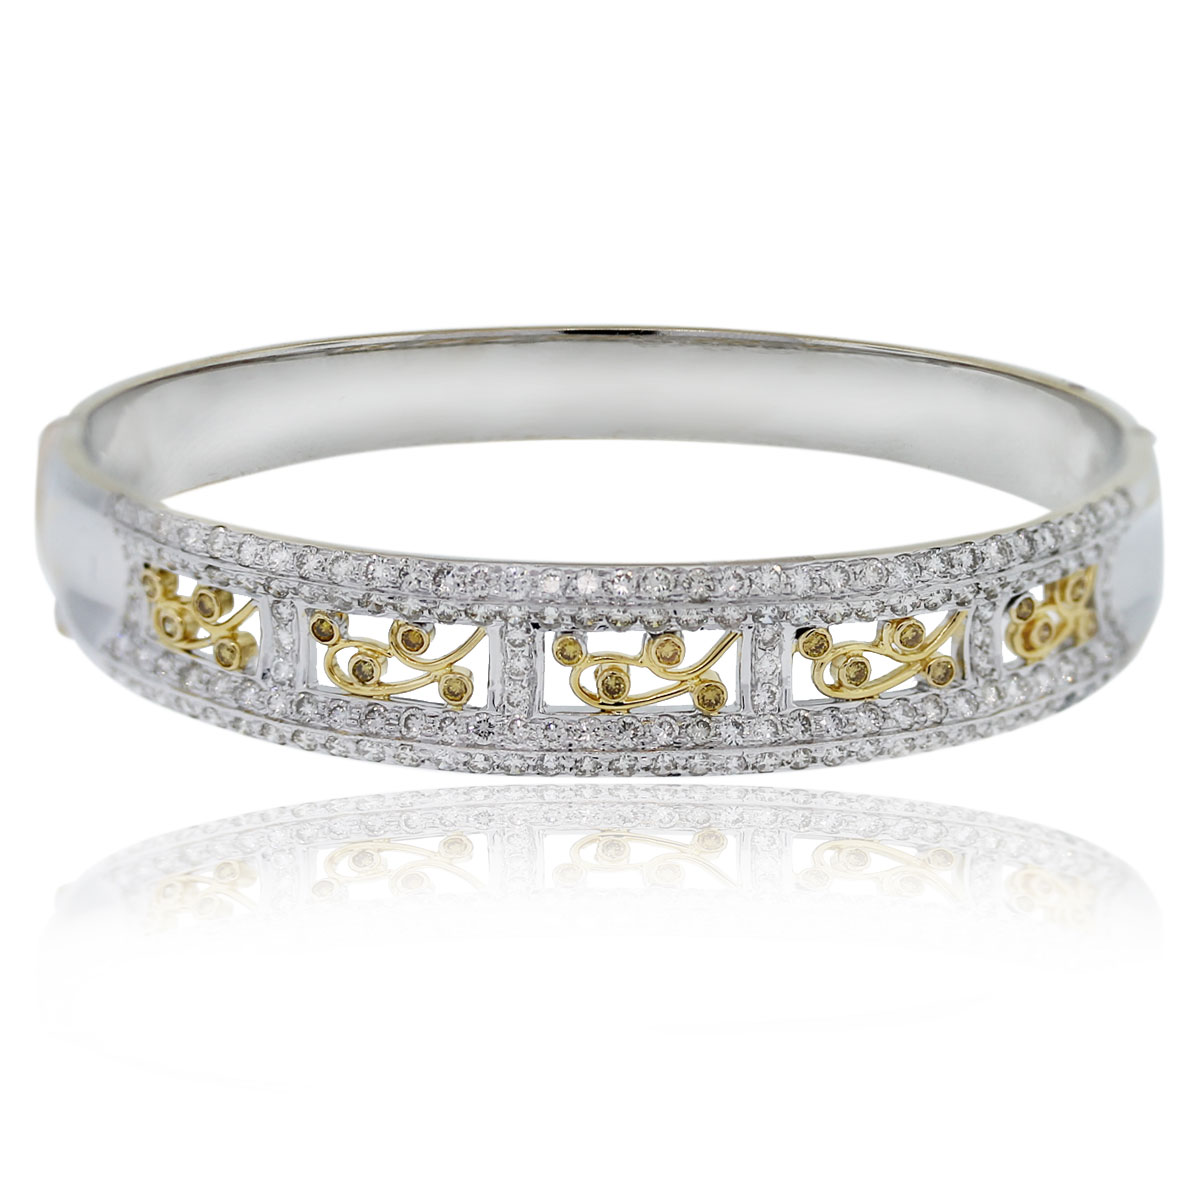 18kt Two Tone Round Cut Diamond Bangle Bracelet